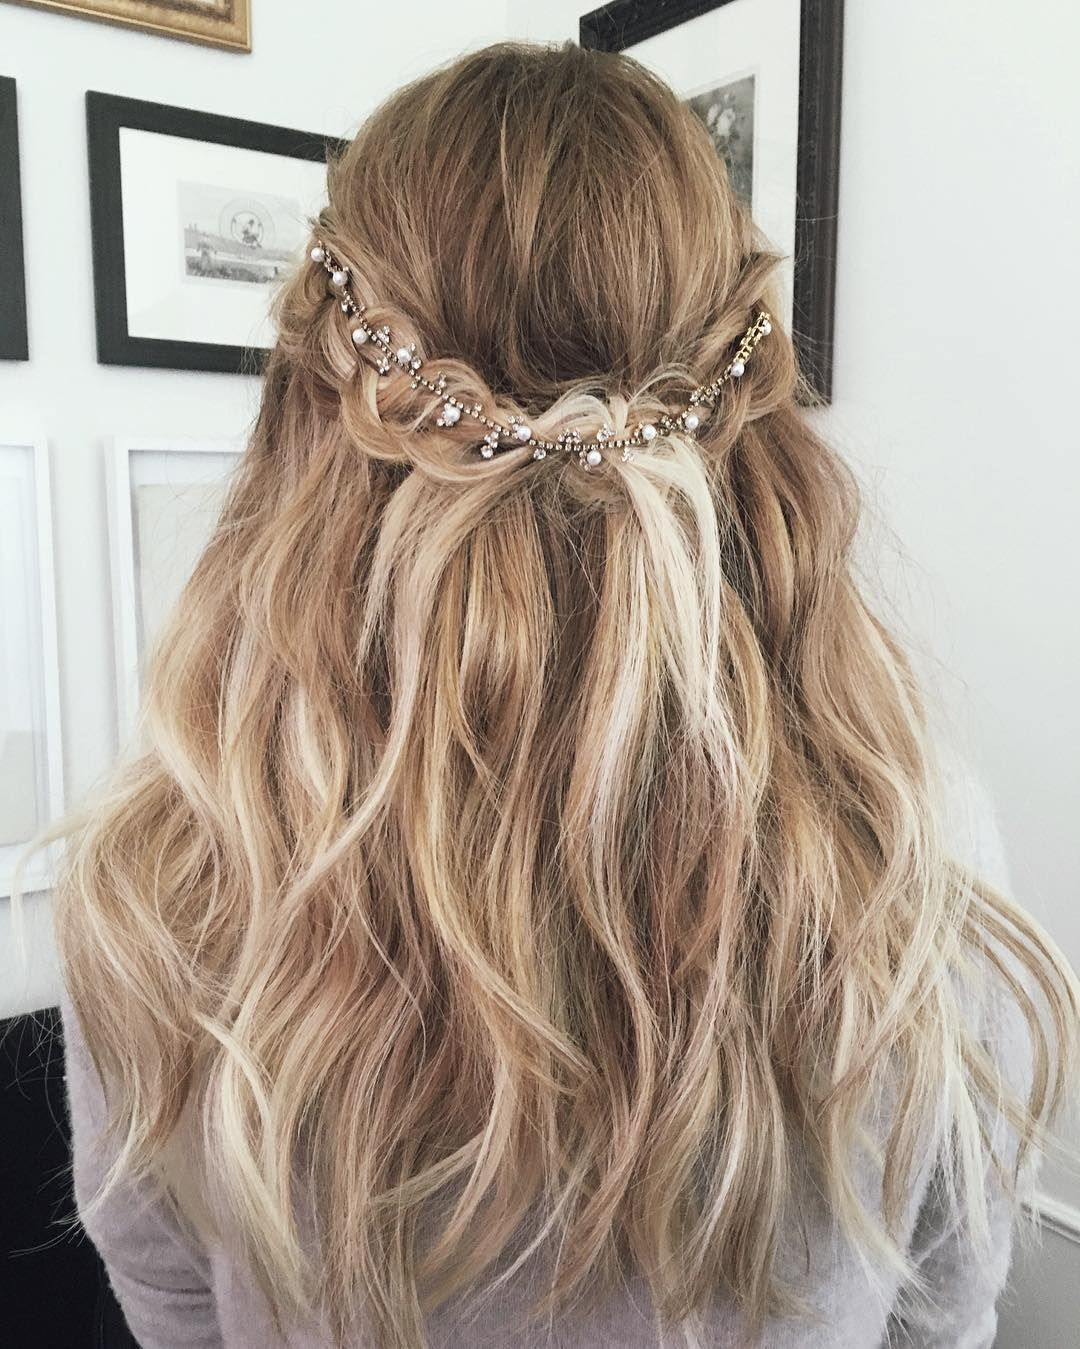 51 Half Up Half Down Prom Hairstyles Hairstyles Prom